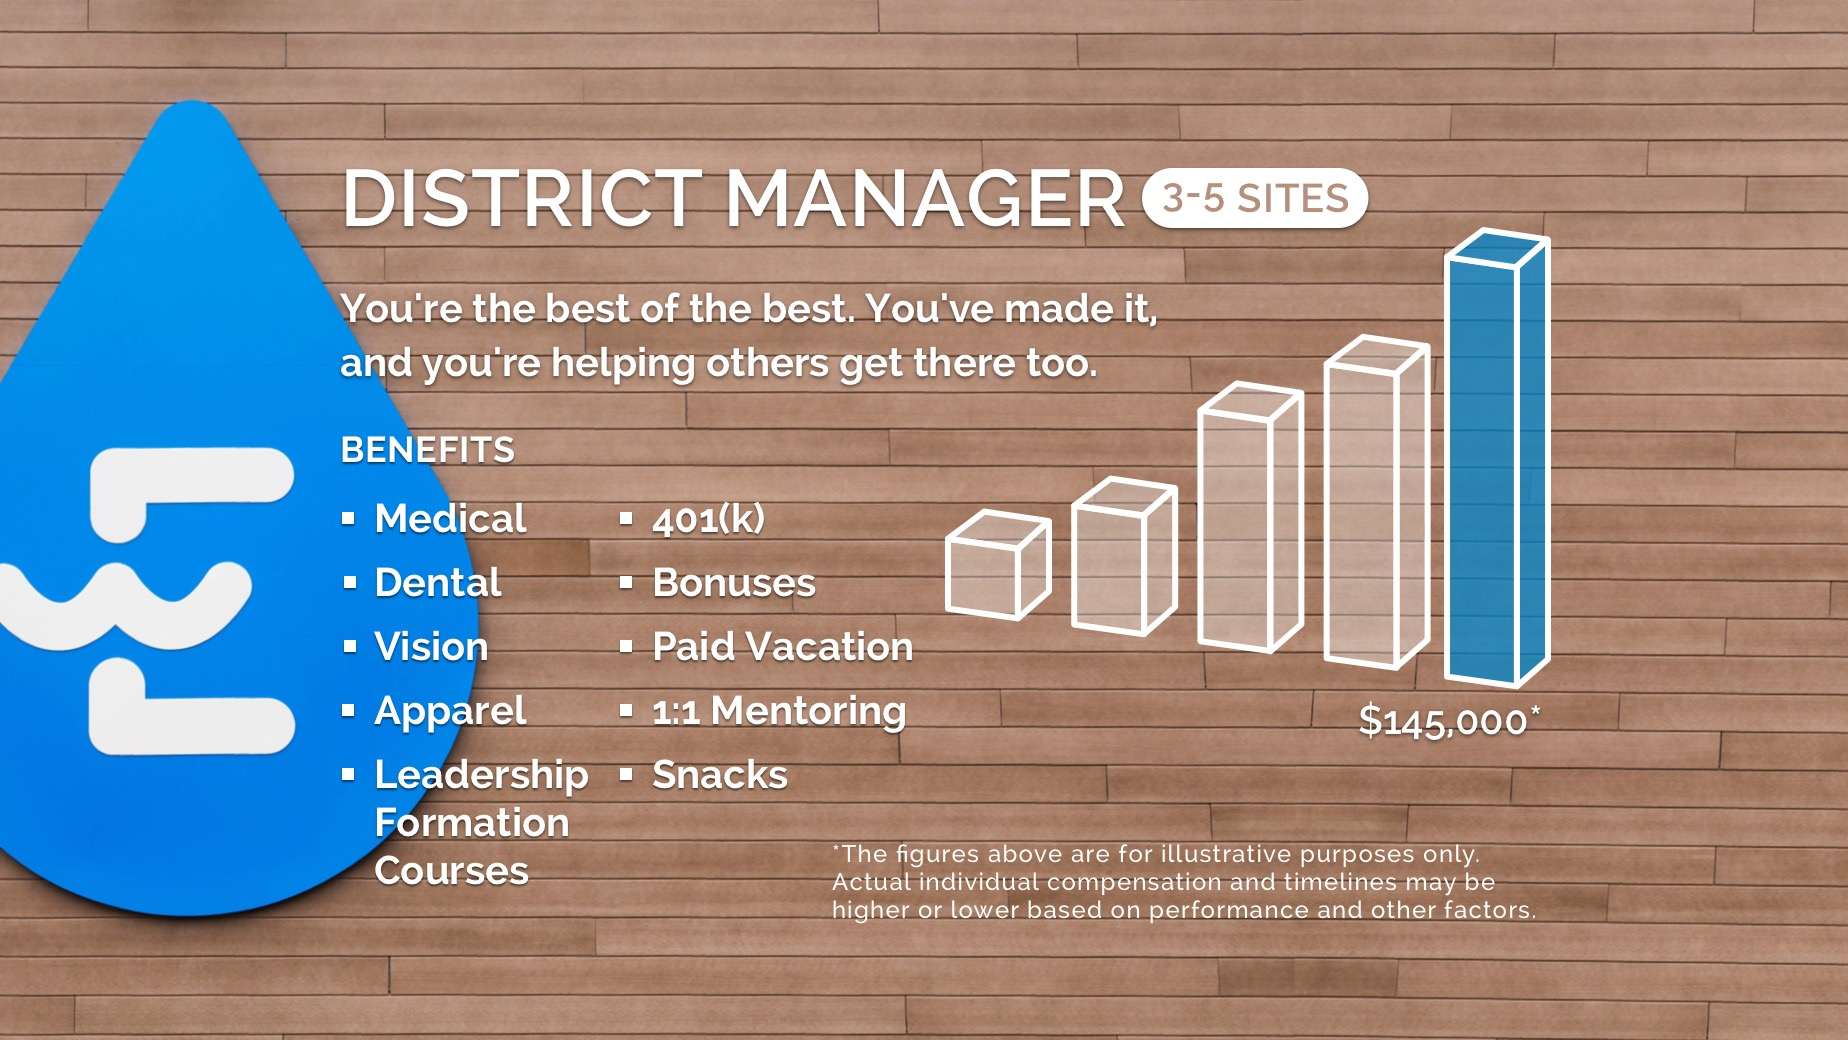 district-manager.jpg